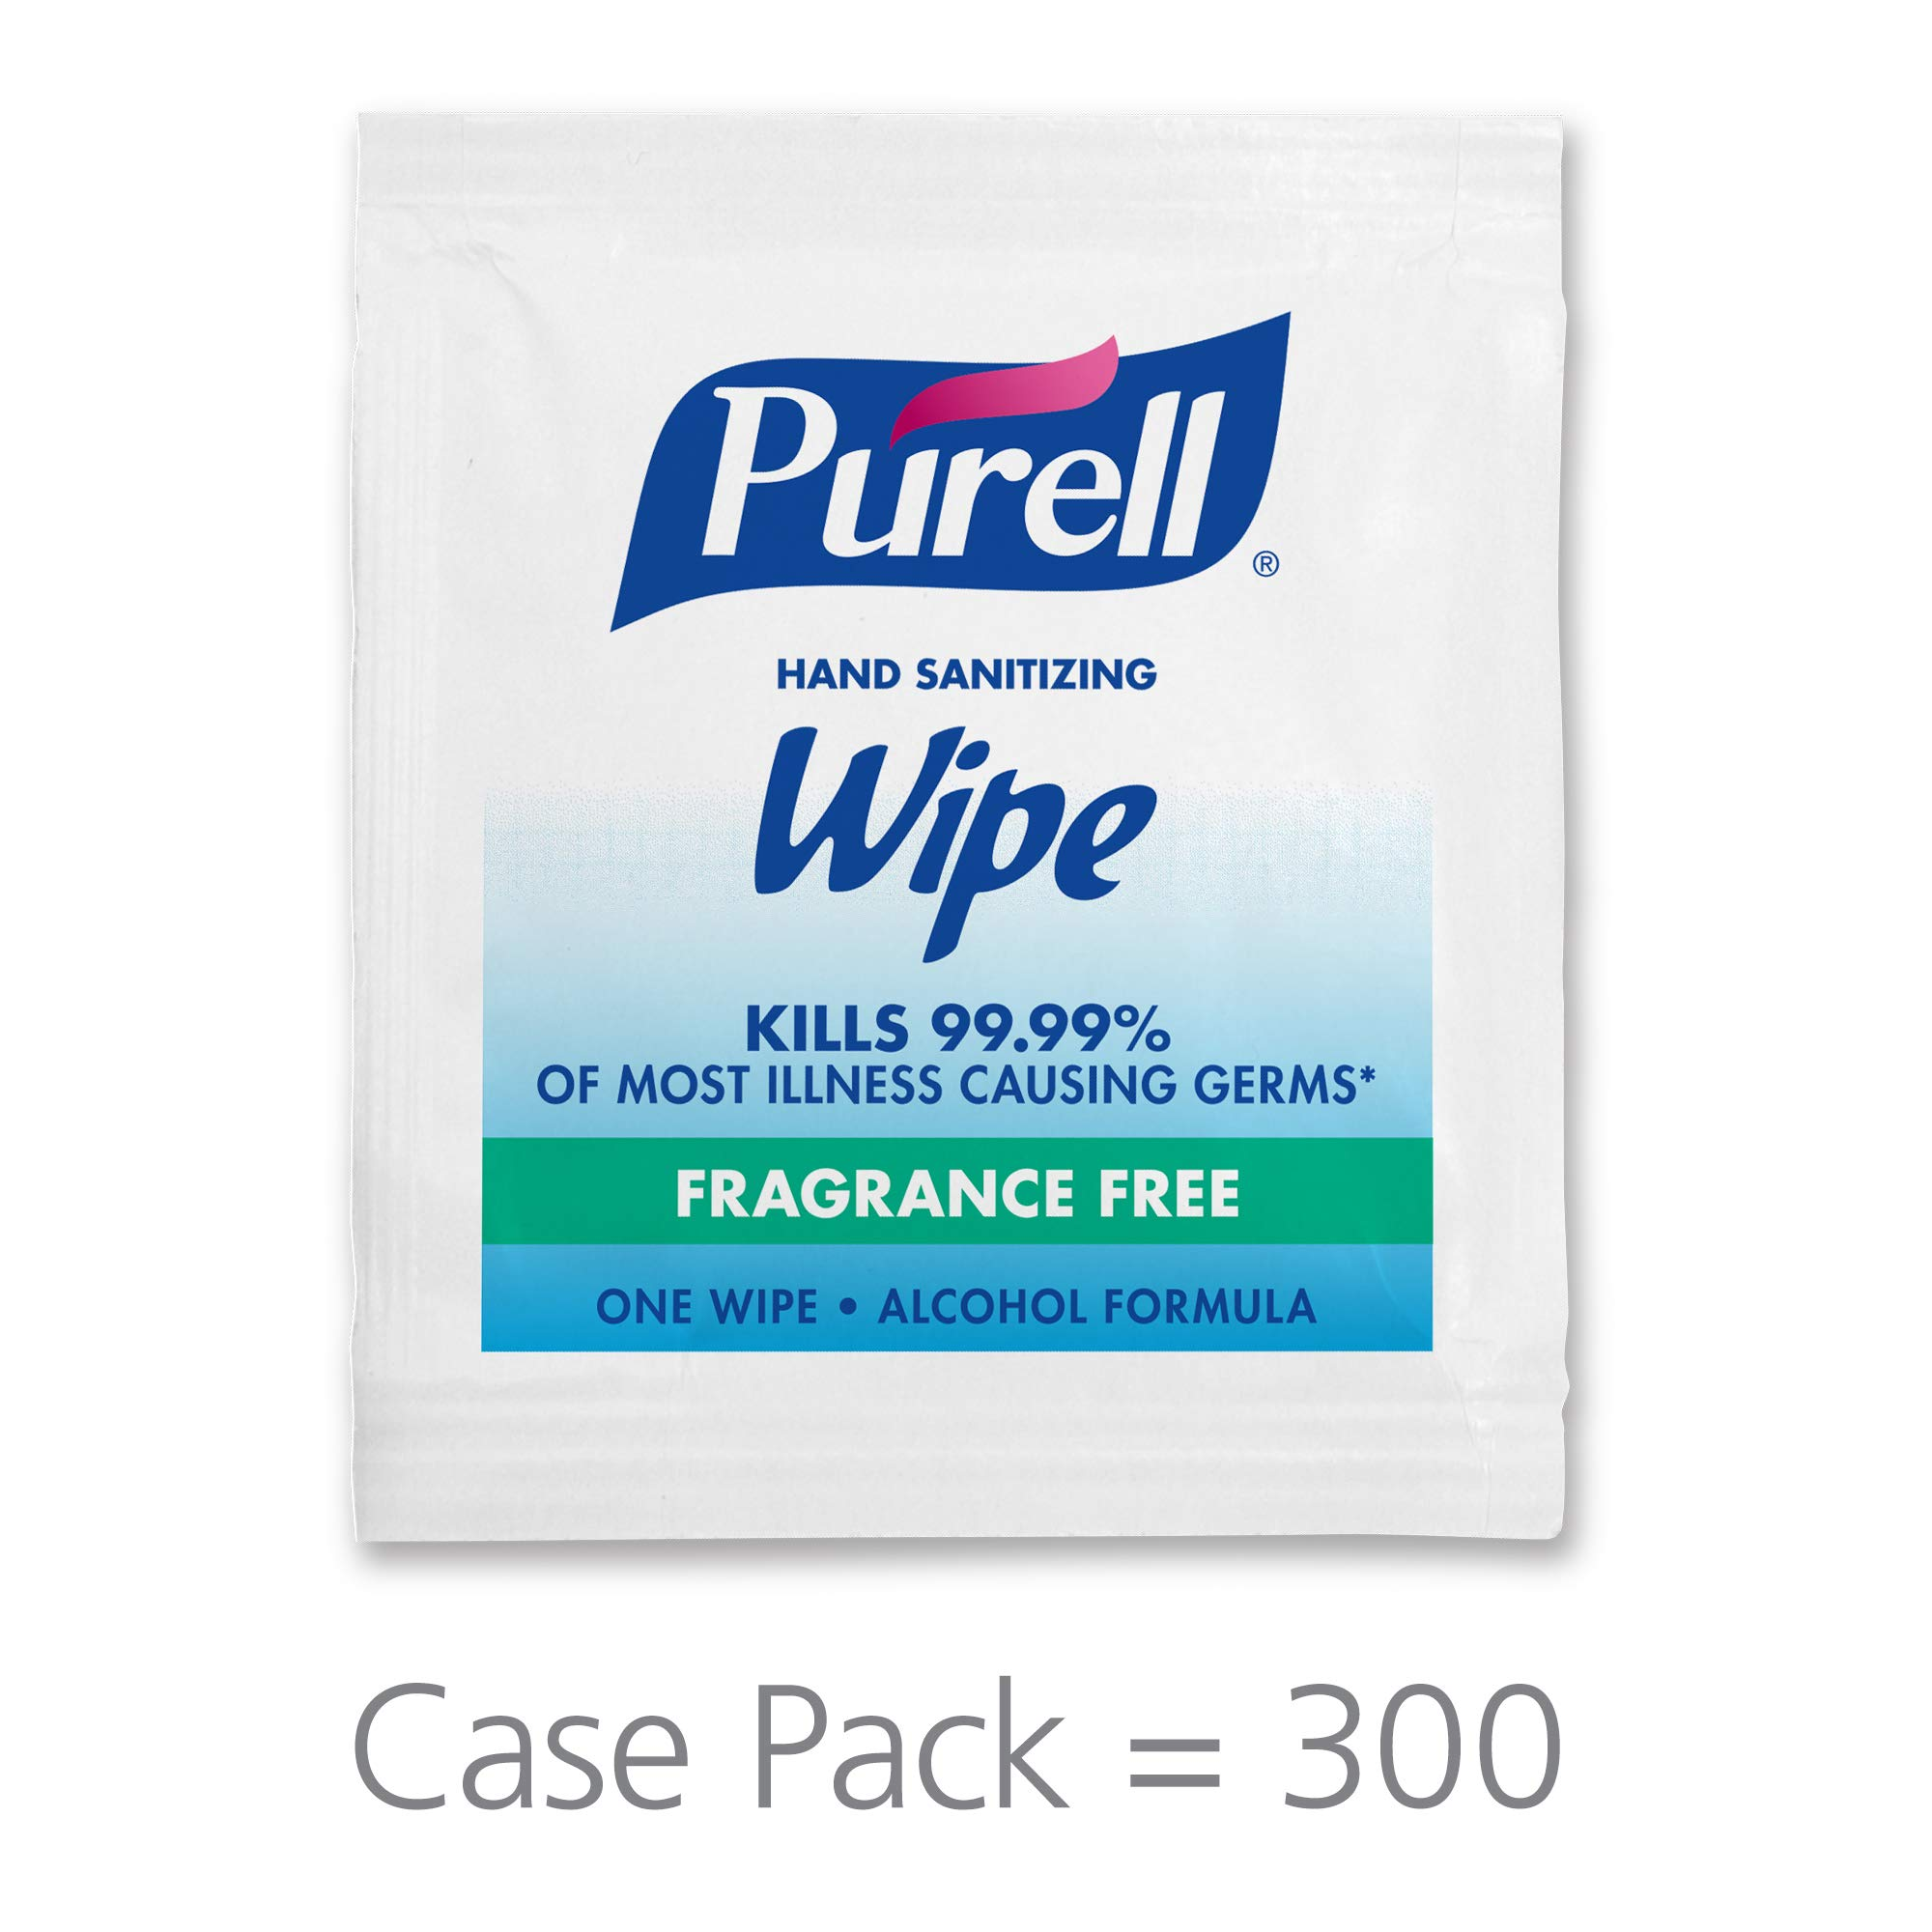 PURELL Hand Sanitizing Alcohol Formula Wipes, Fragrance Free, 300 Count Individually Wrapped Portable Wipes Packets (Pack of 300) - 9020-06-EC by Purell